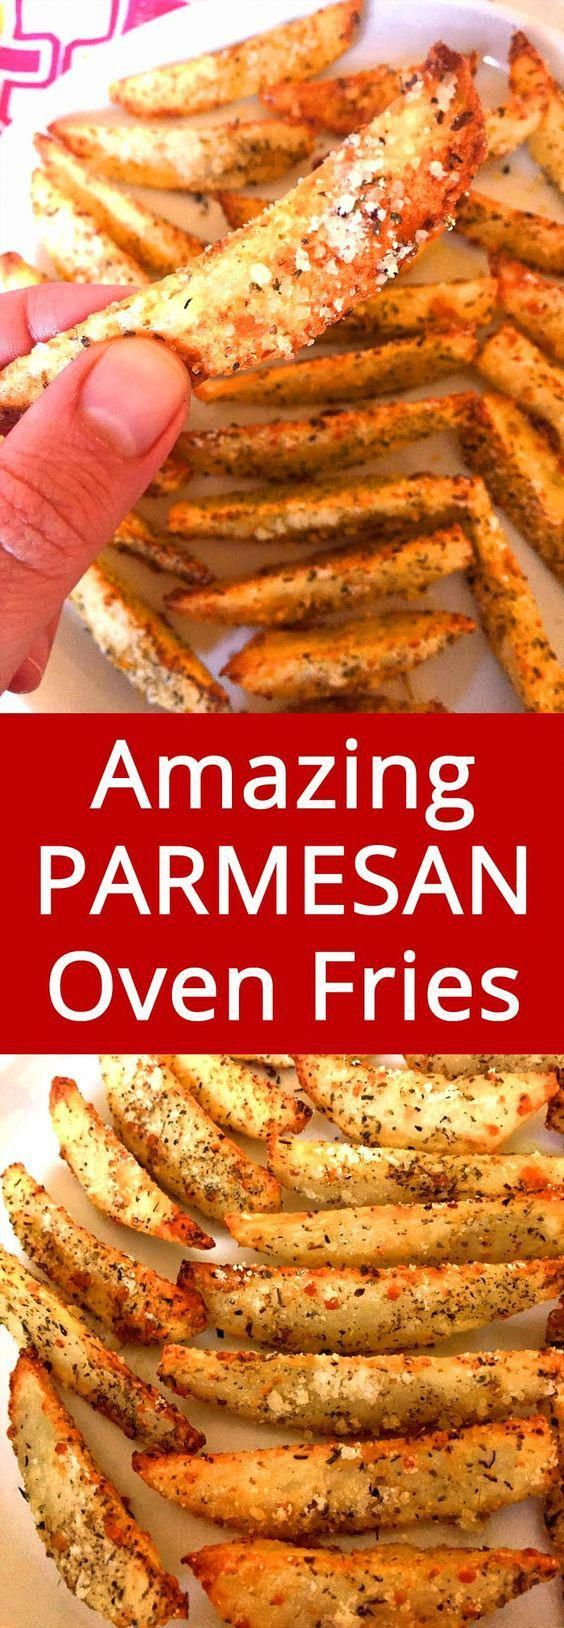 OMG these BAKED garlic Parmesan fries are amazing! I'm drooling! This is my favorite potato recipe,...